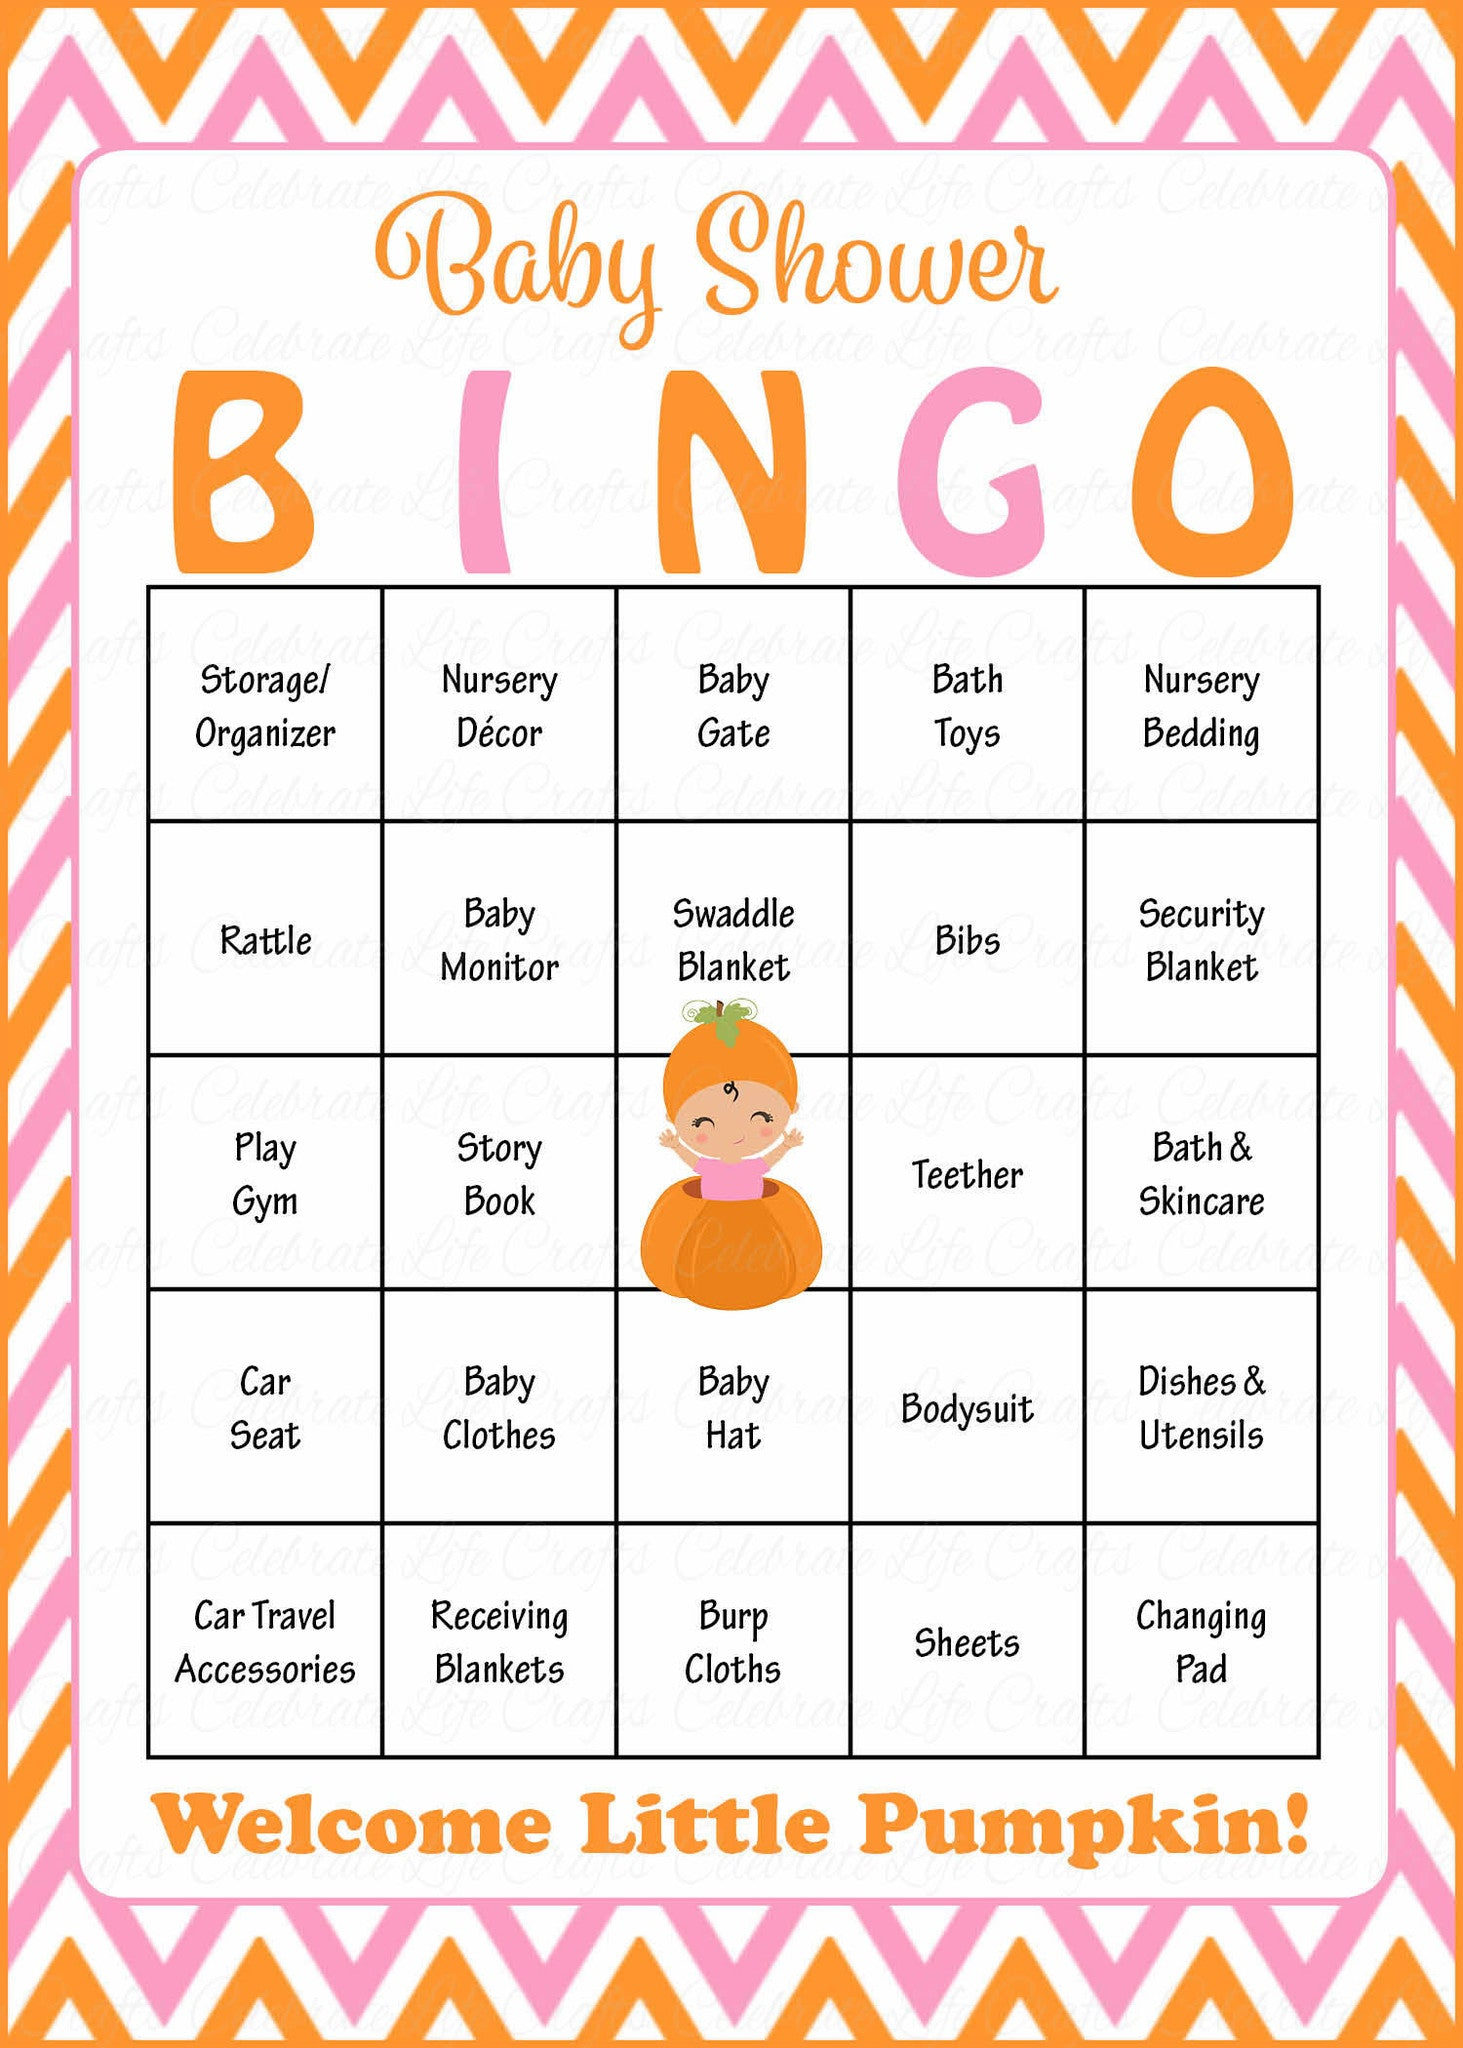 Little Pumpkin Baby Shower Game   Baby Bingo Cards For Girl   Printable  Download   Prefilled   Orange U0026 Pink.